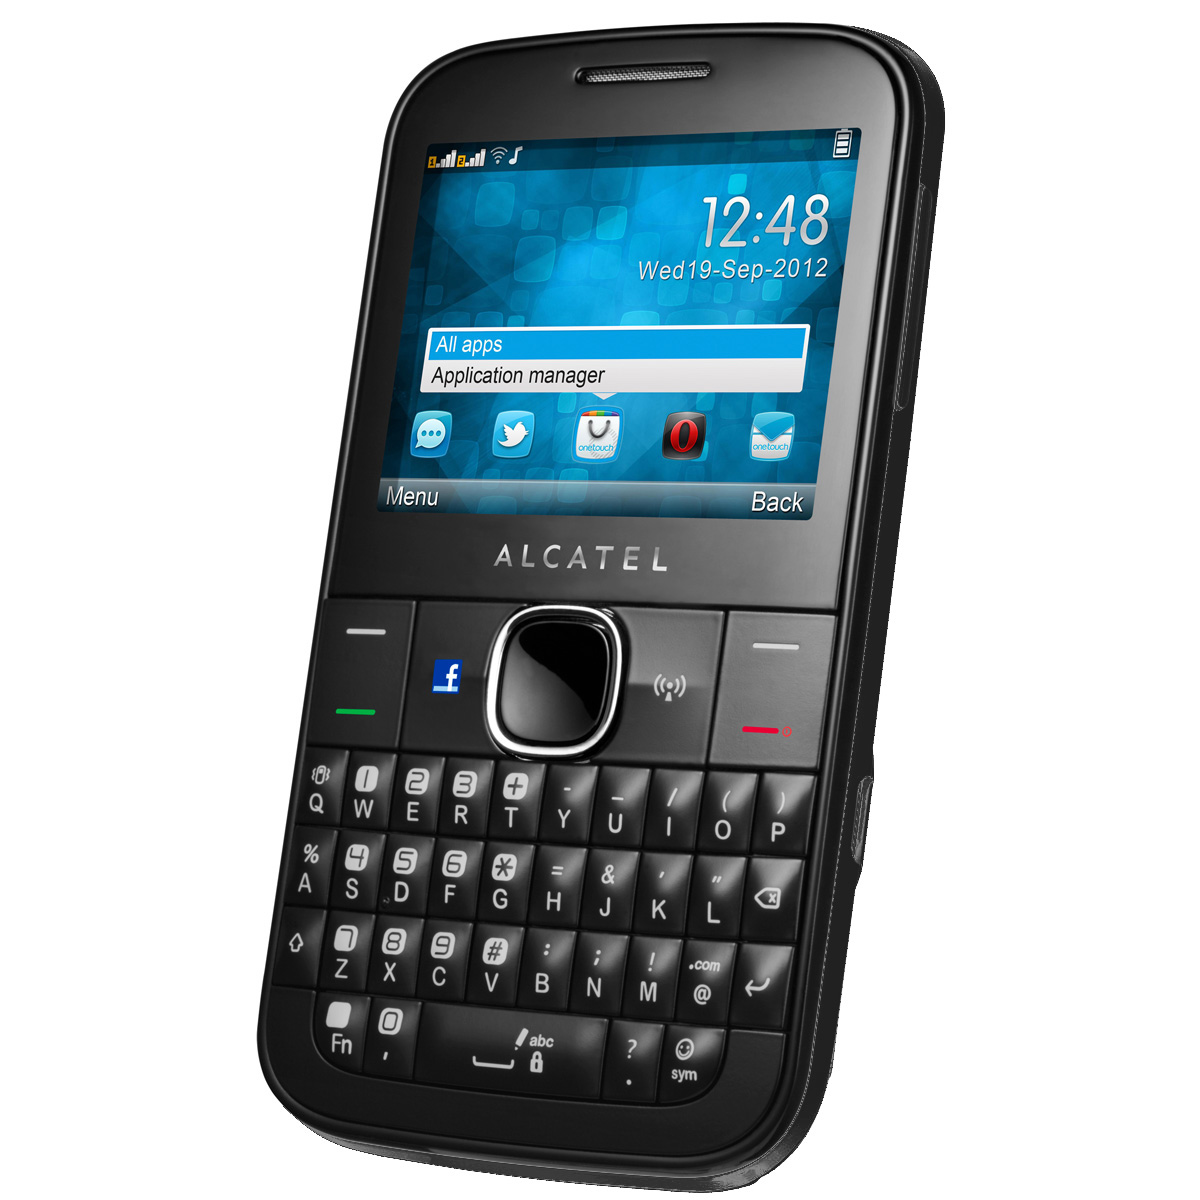 alcatel one touch 815d noir mobile smartphone alcatel. Black Bedroom Furniture Sets. Home Design Ideas